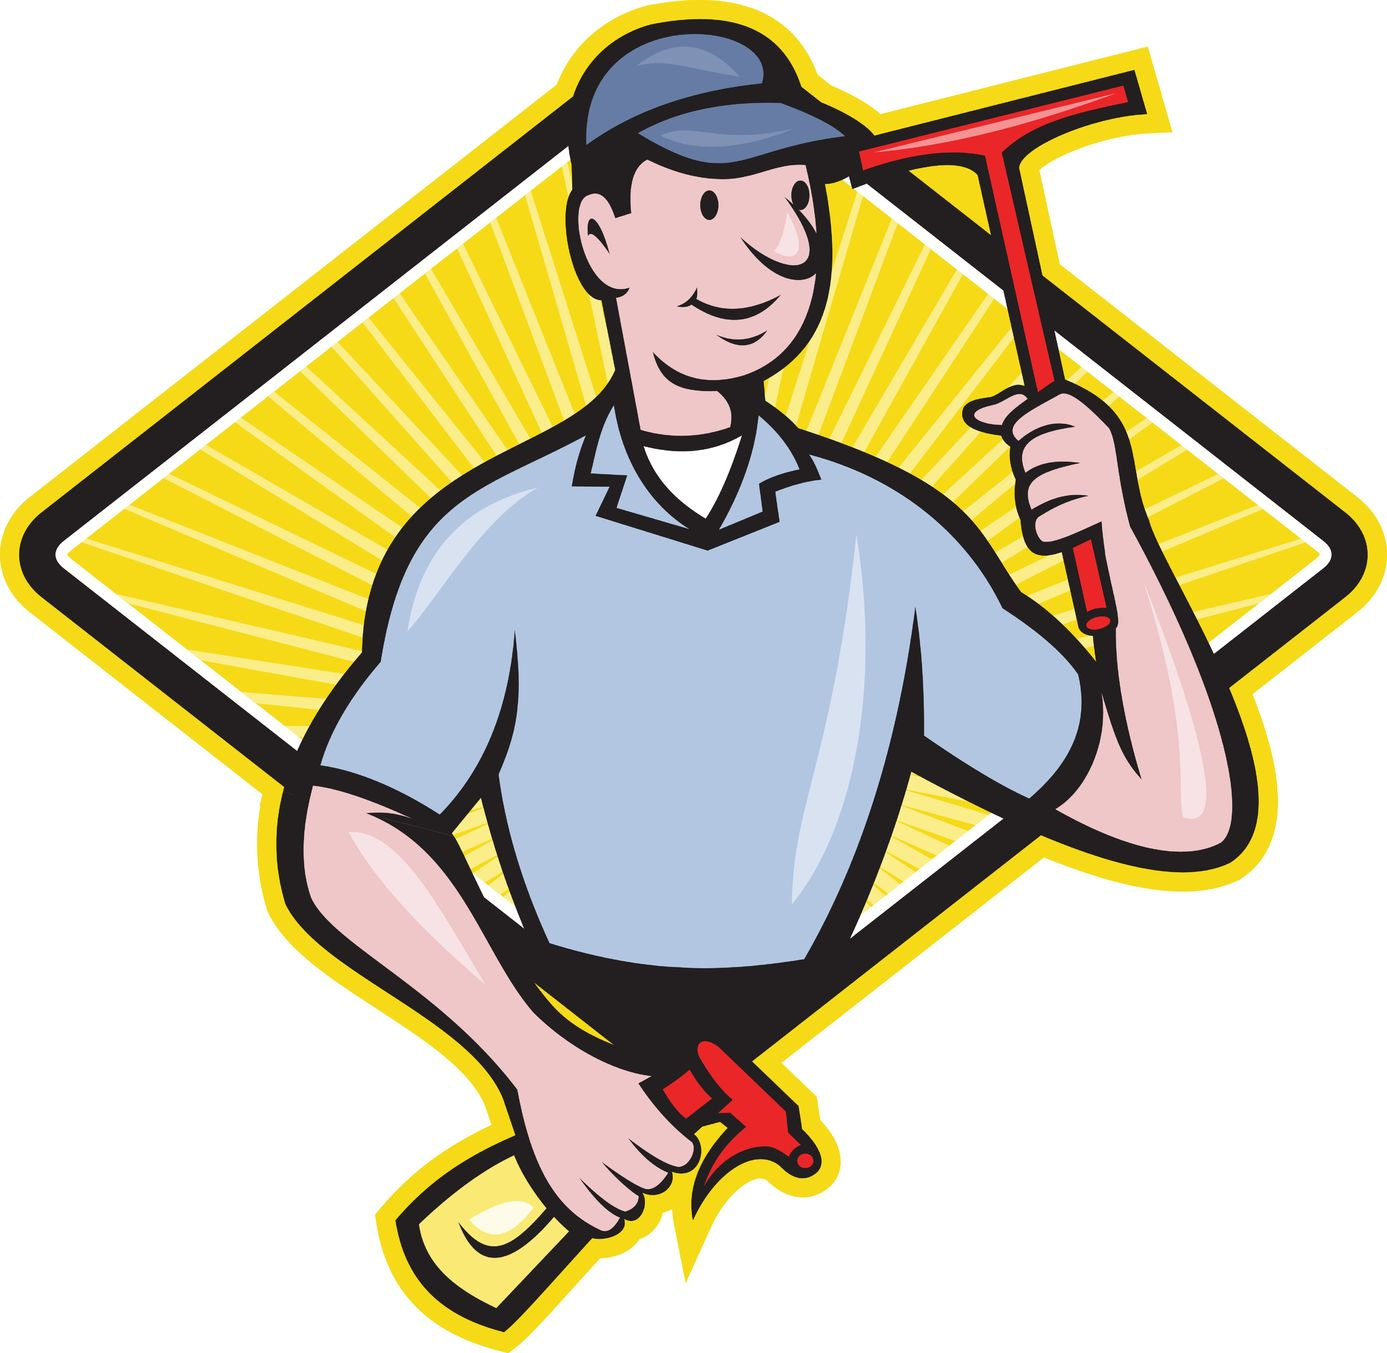 Cleaning Services Clipart Images Pictures.